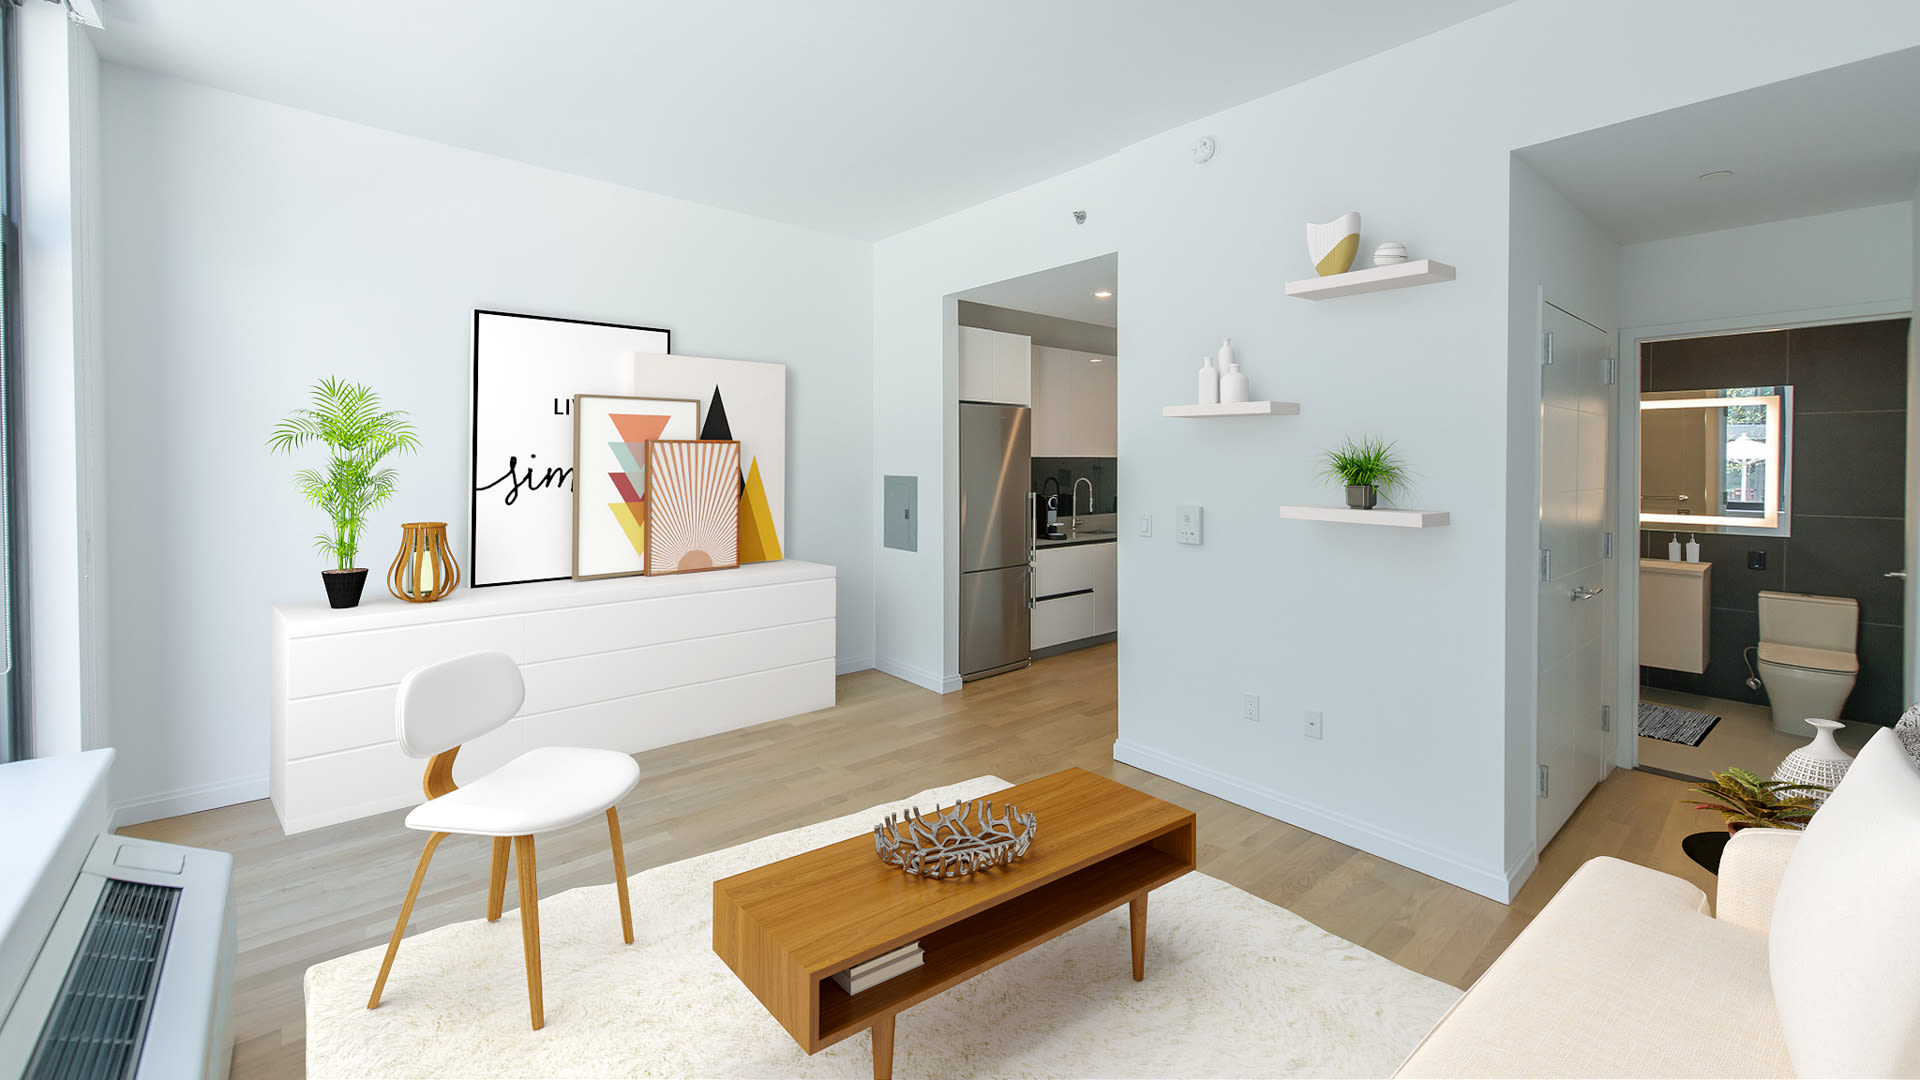 Atelier Apartments - Living Room with Hardwood Floors